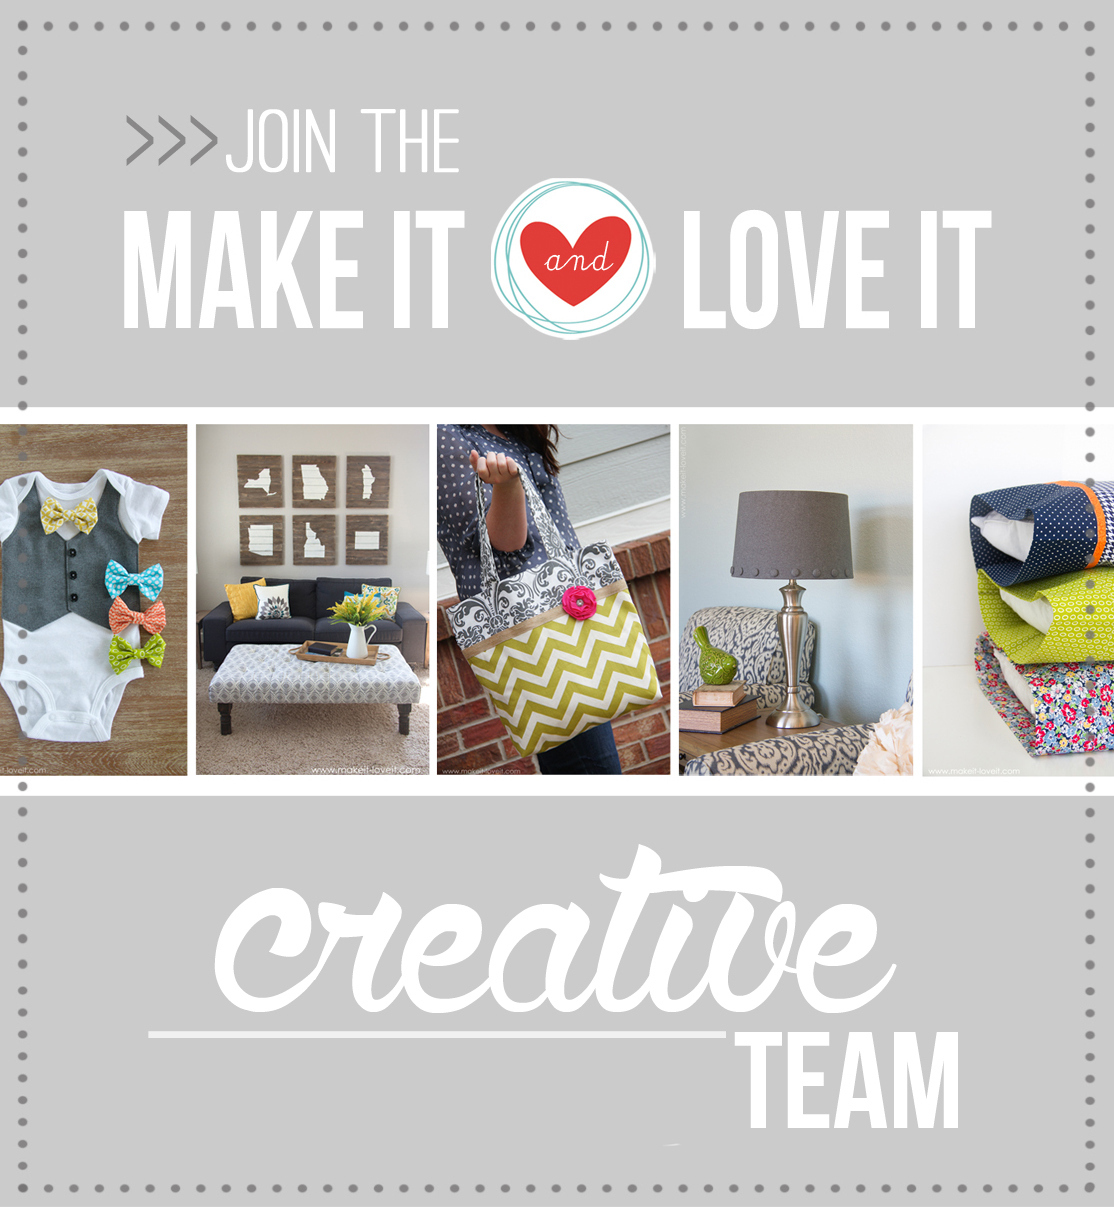 Join the make it and love it team 2016!!!